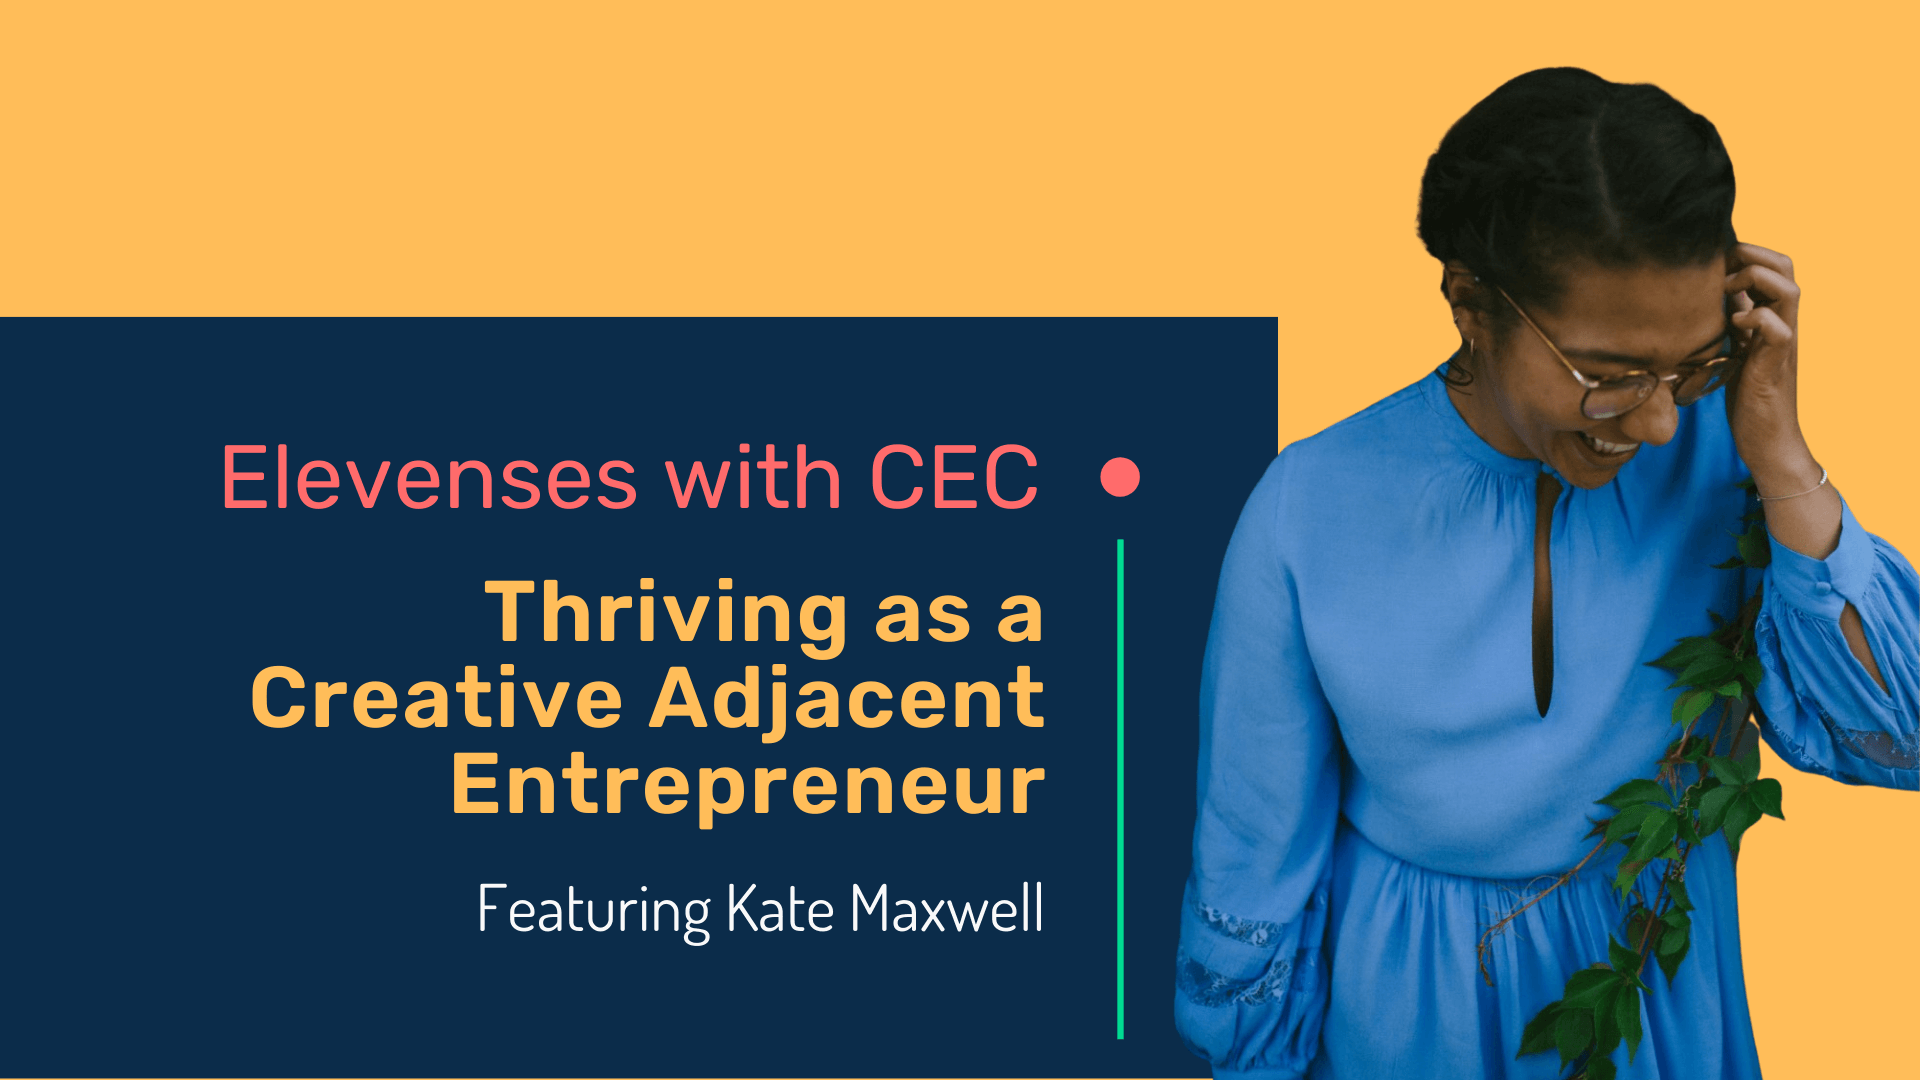 Thriving as a creative adjacent entrepreneur with Kate Maxwell